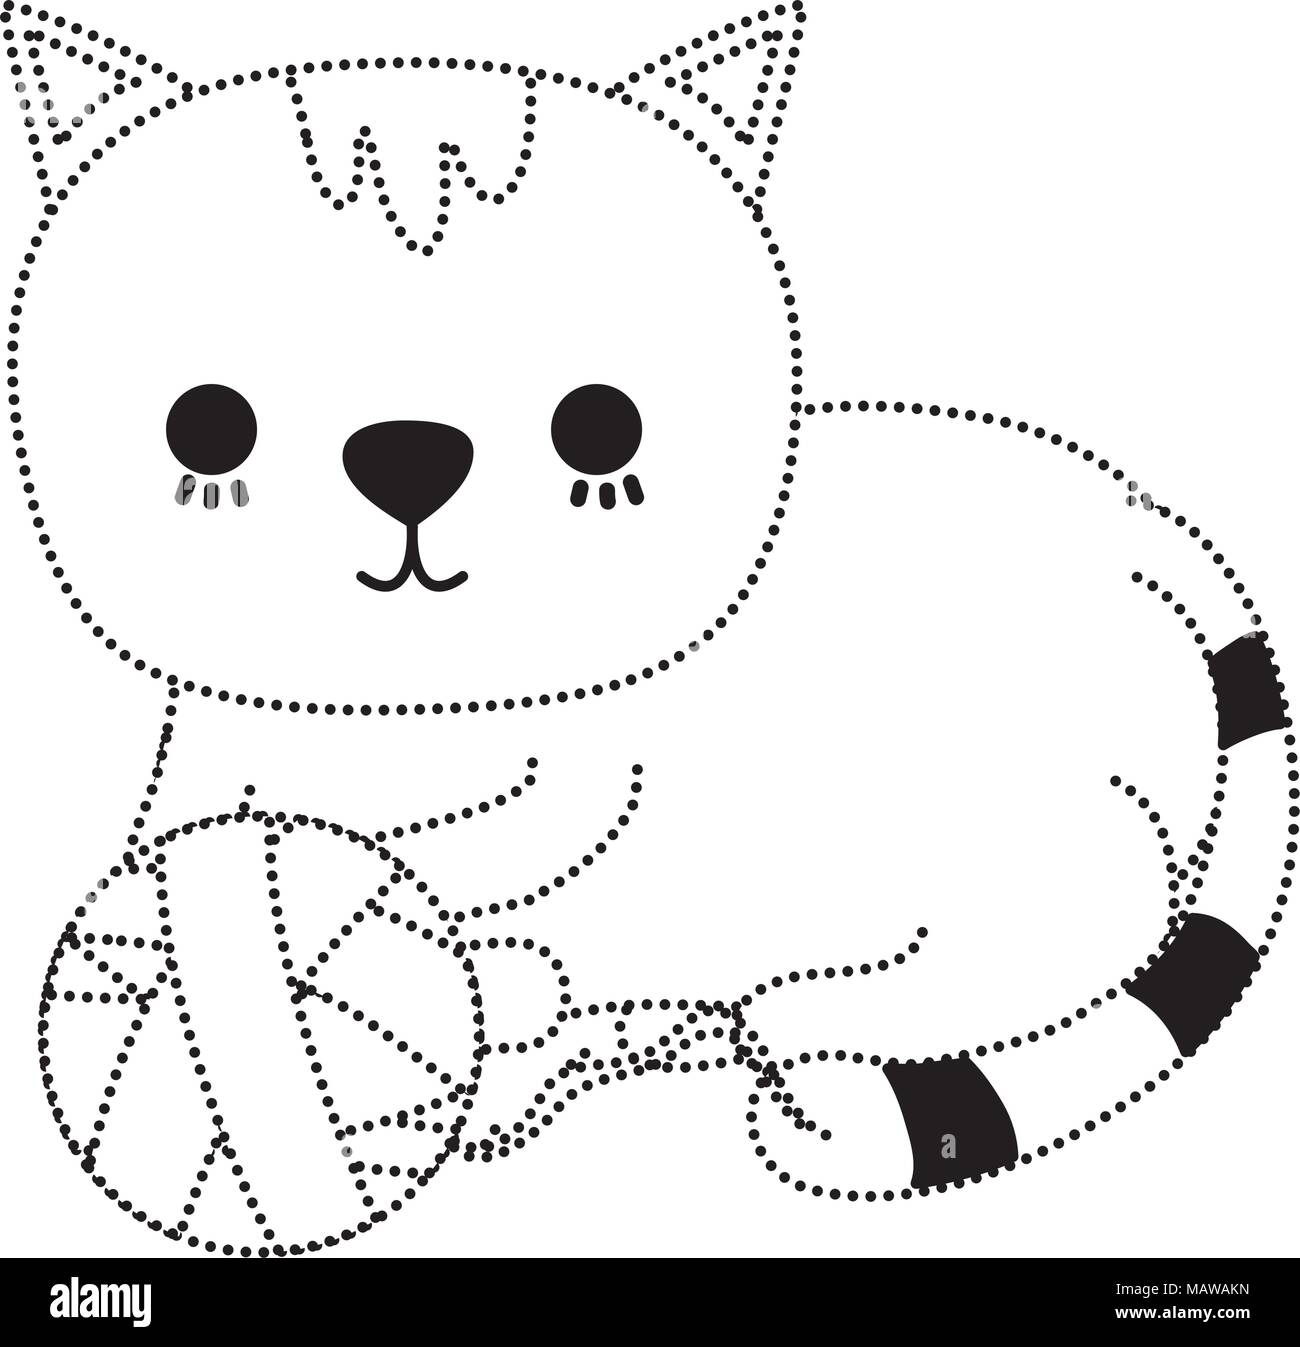 dotted shape cat pet cute animal with wool ball vector illustration - Stock Vector